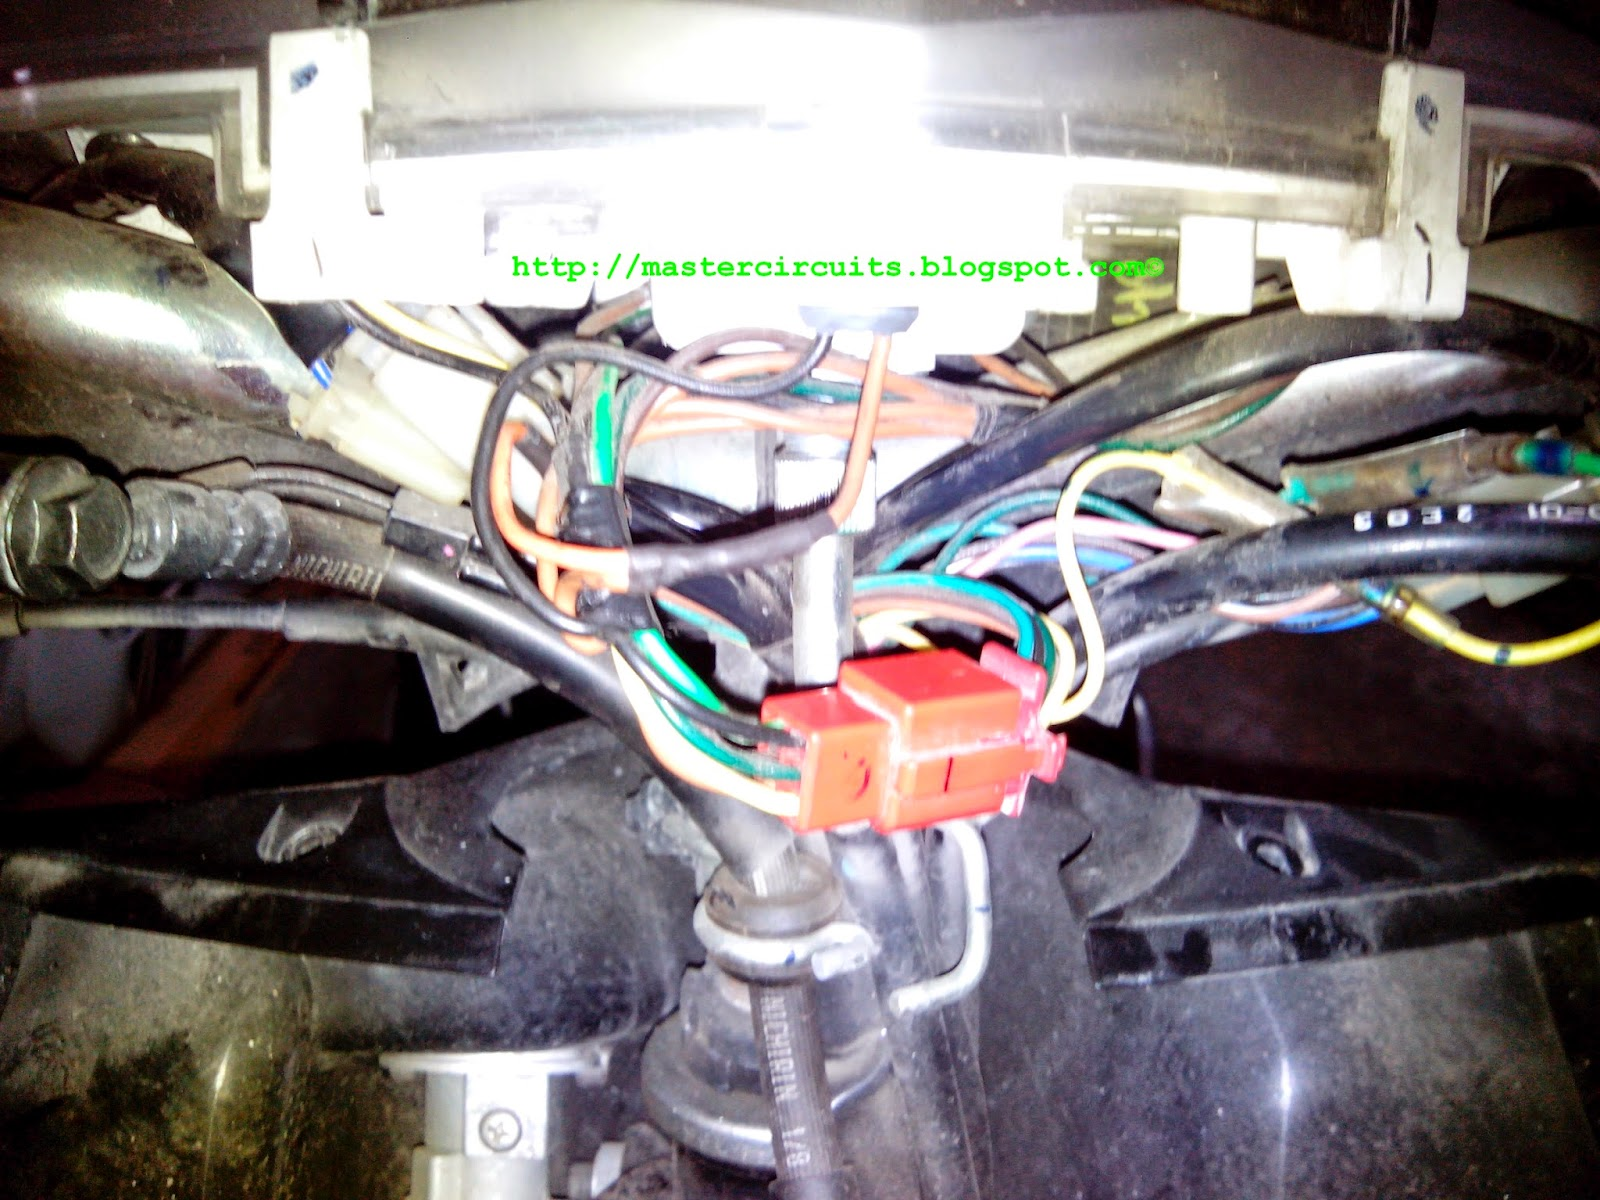 Yamaha Mio Soul Wiring Diagram : Yamaha mio soul led headlight conversion techy at day